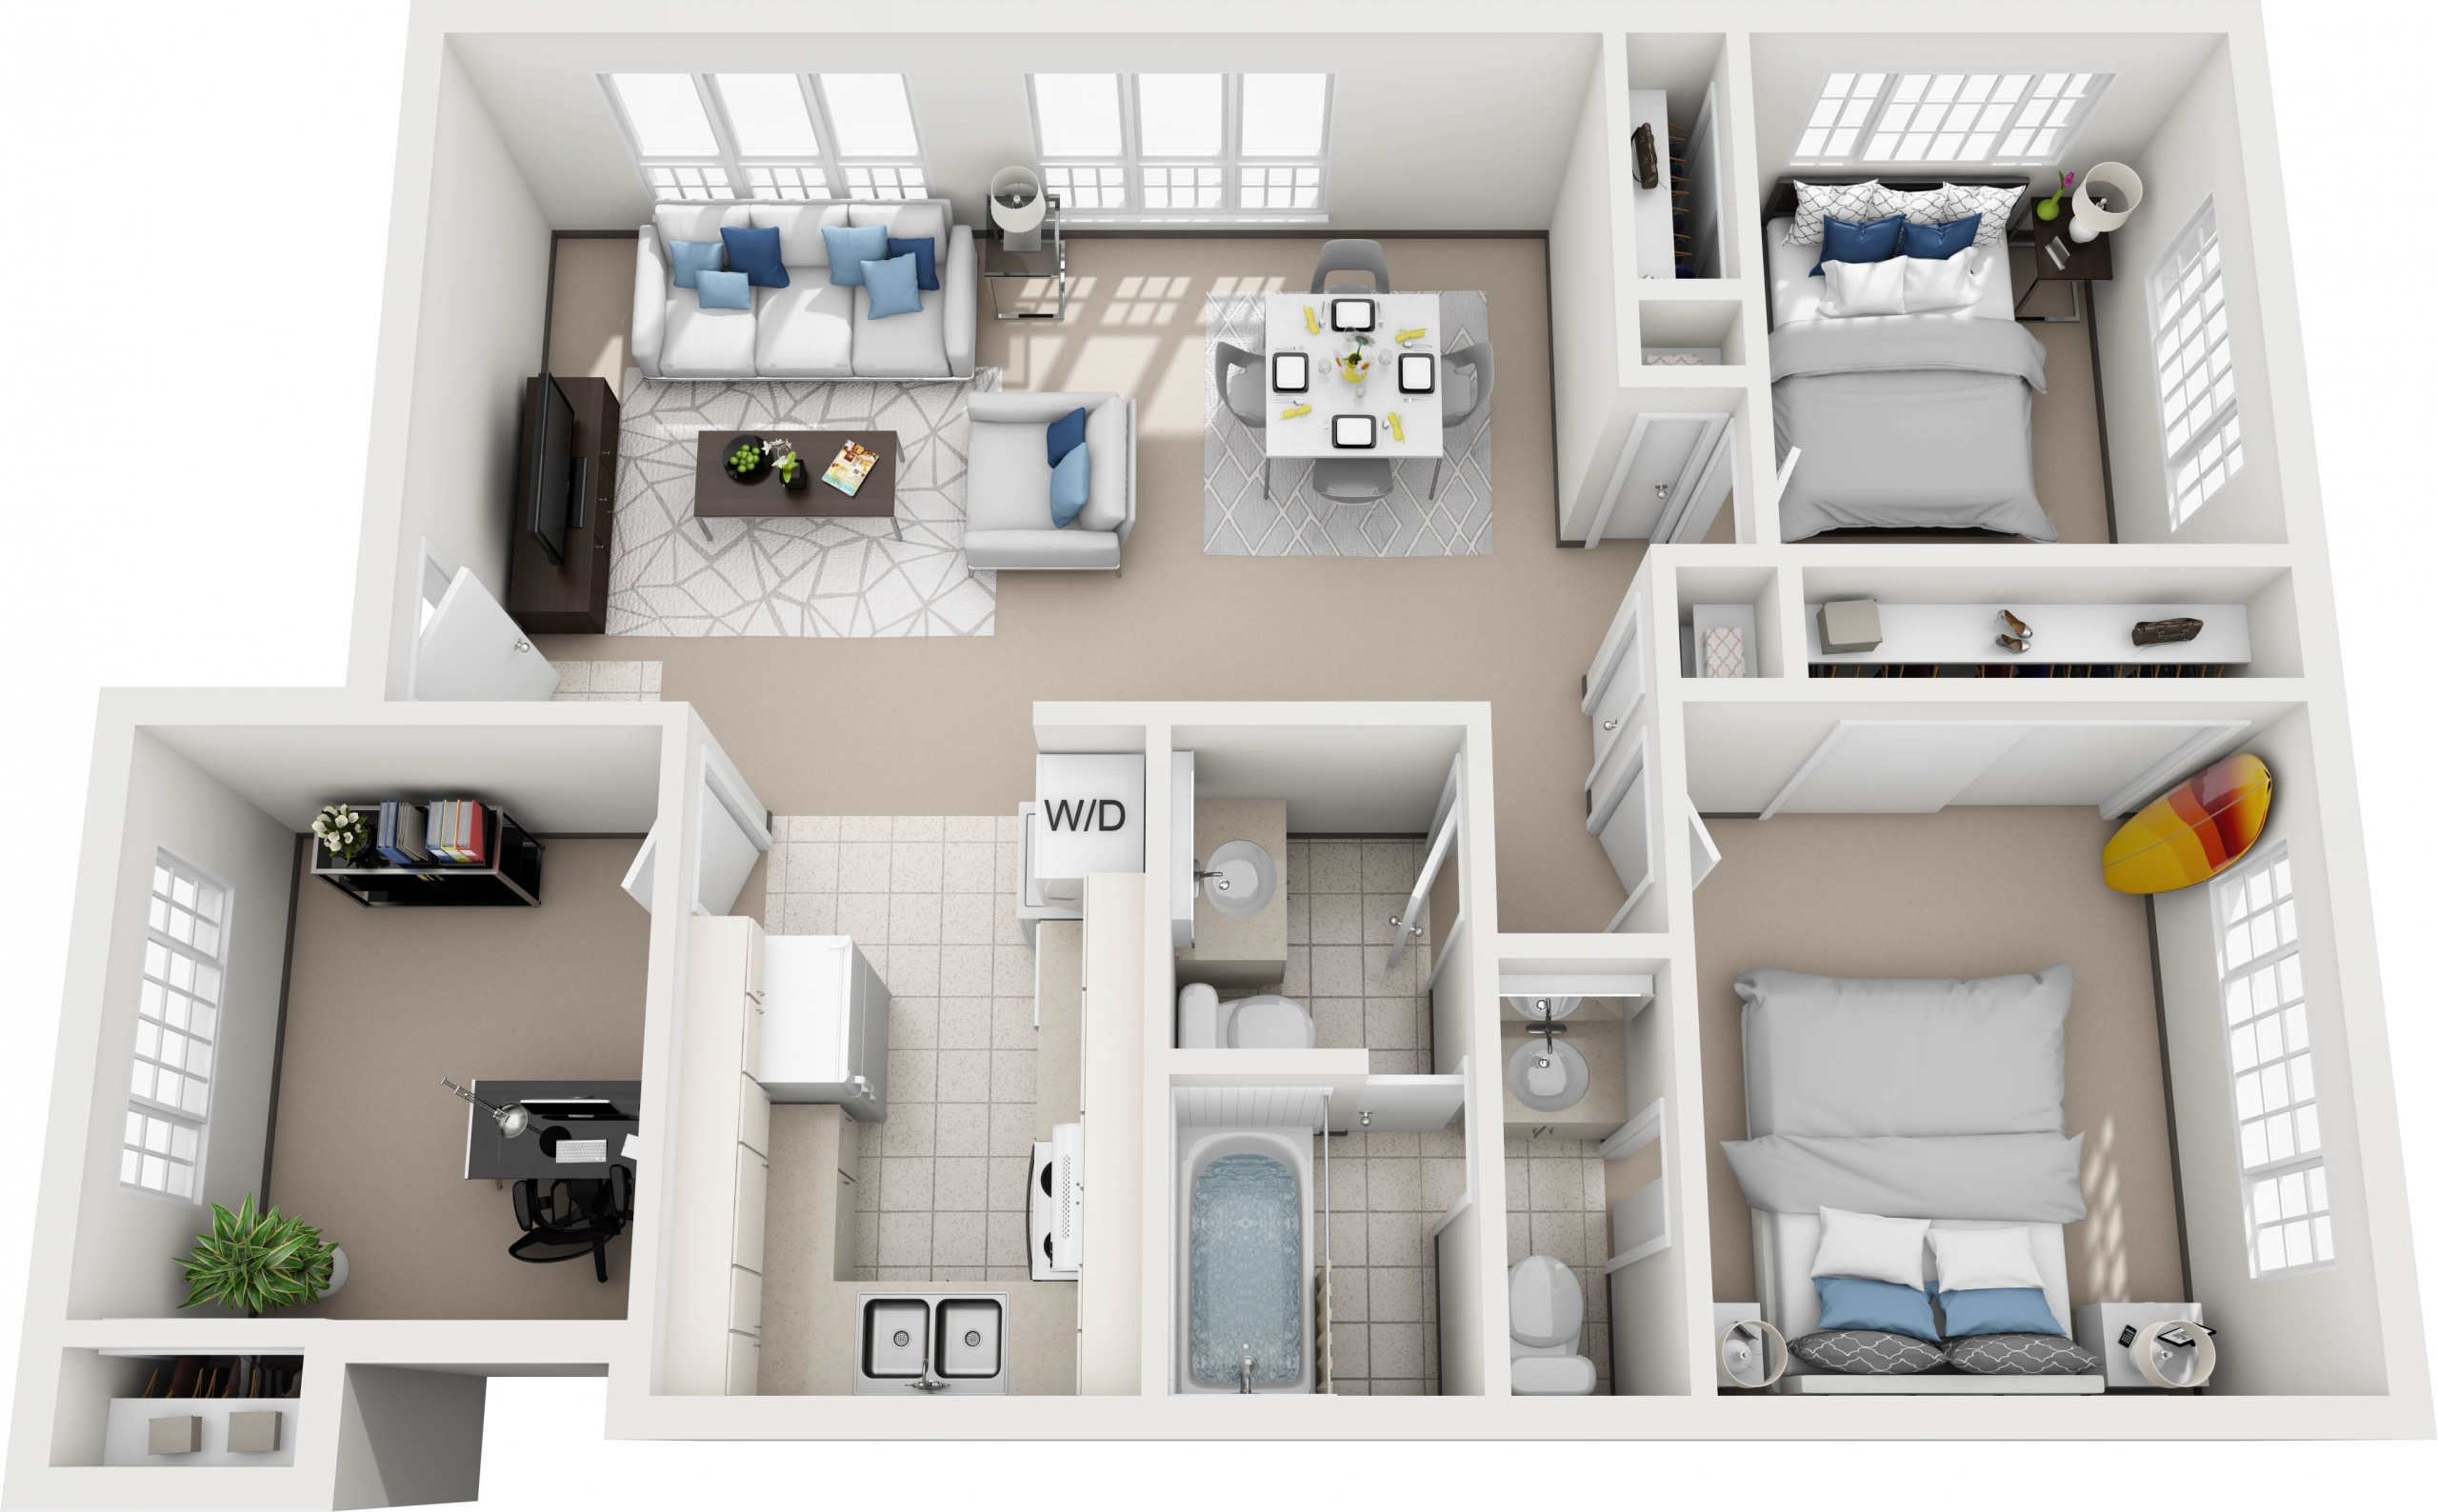 Model I - 3 bedroom apartment floor plan at Villas at Royal Kunia